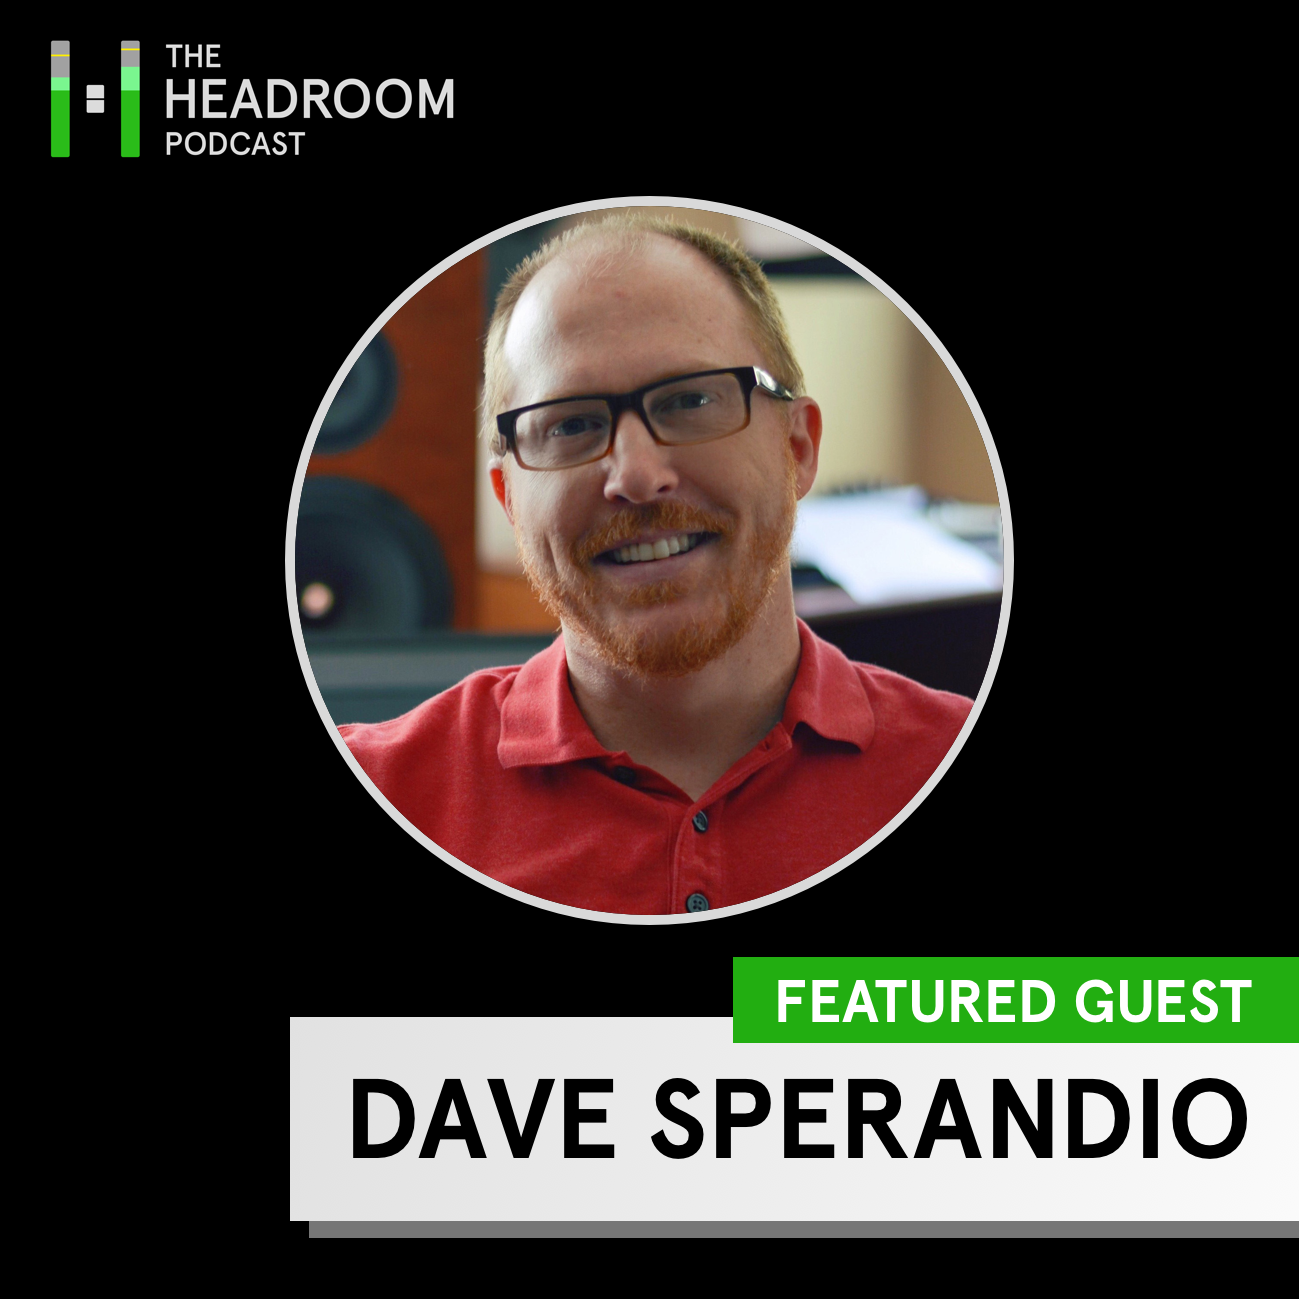 Headroom Episode 5 - Dave Sperandio